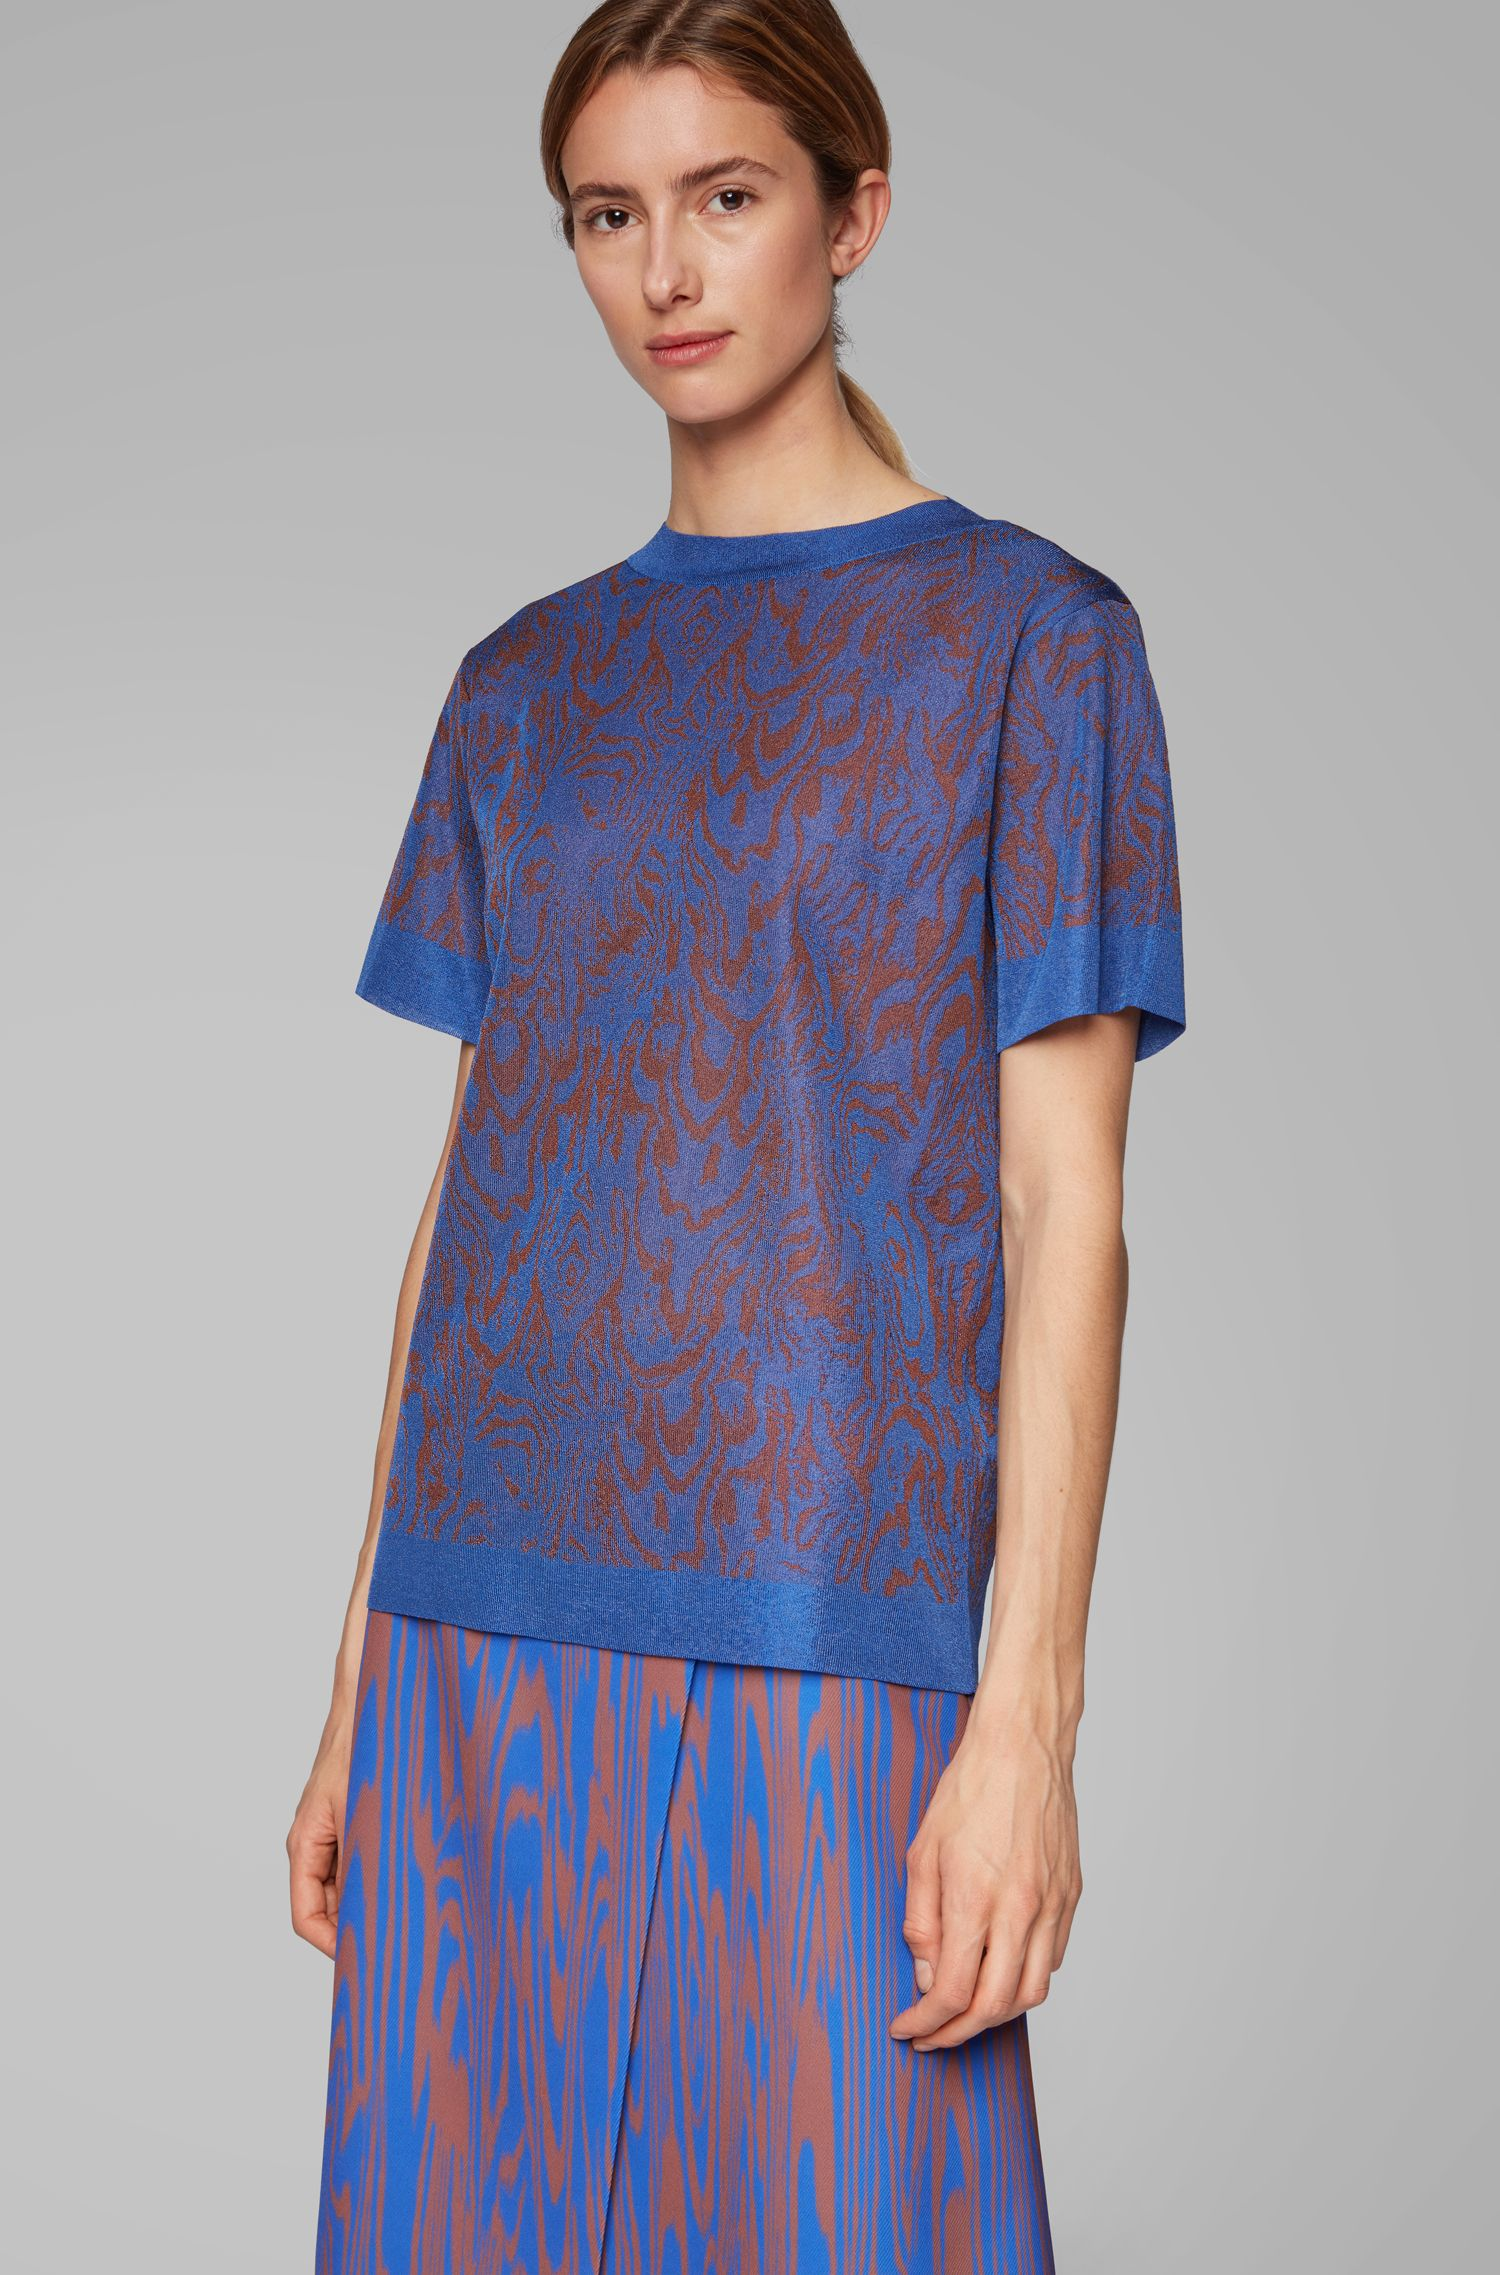 Relaxed-fit sweater in knitted jacquard with short sleeves, Patterned